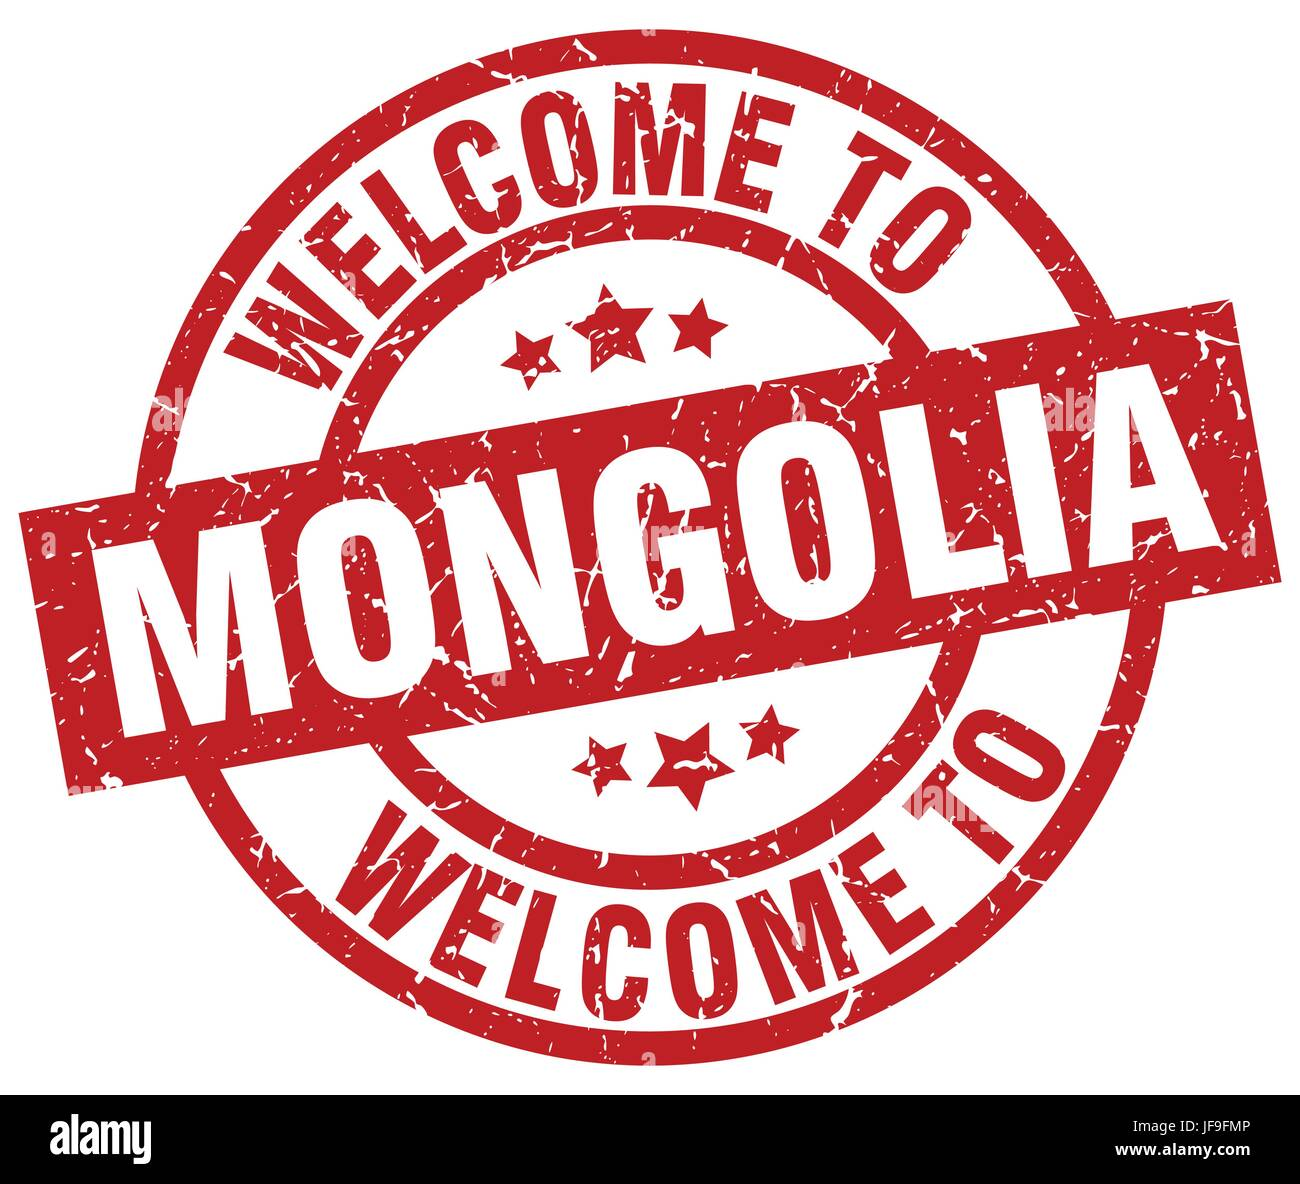 welcome to Mongolia red stamp - Stock Vector